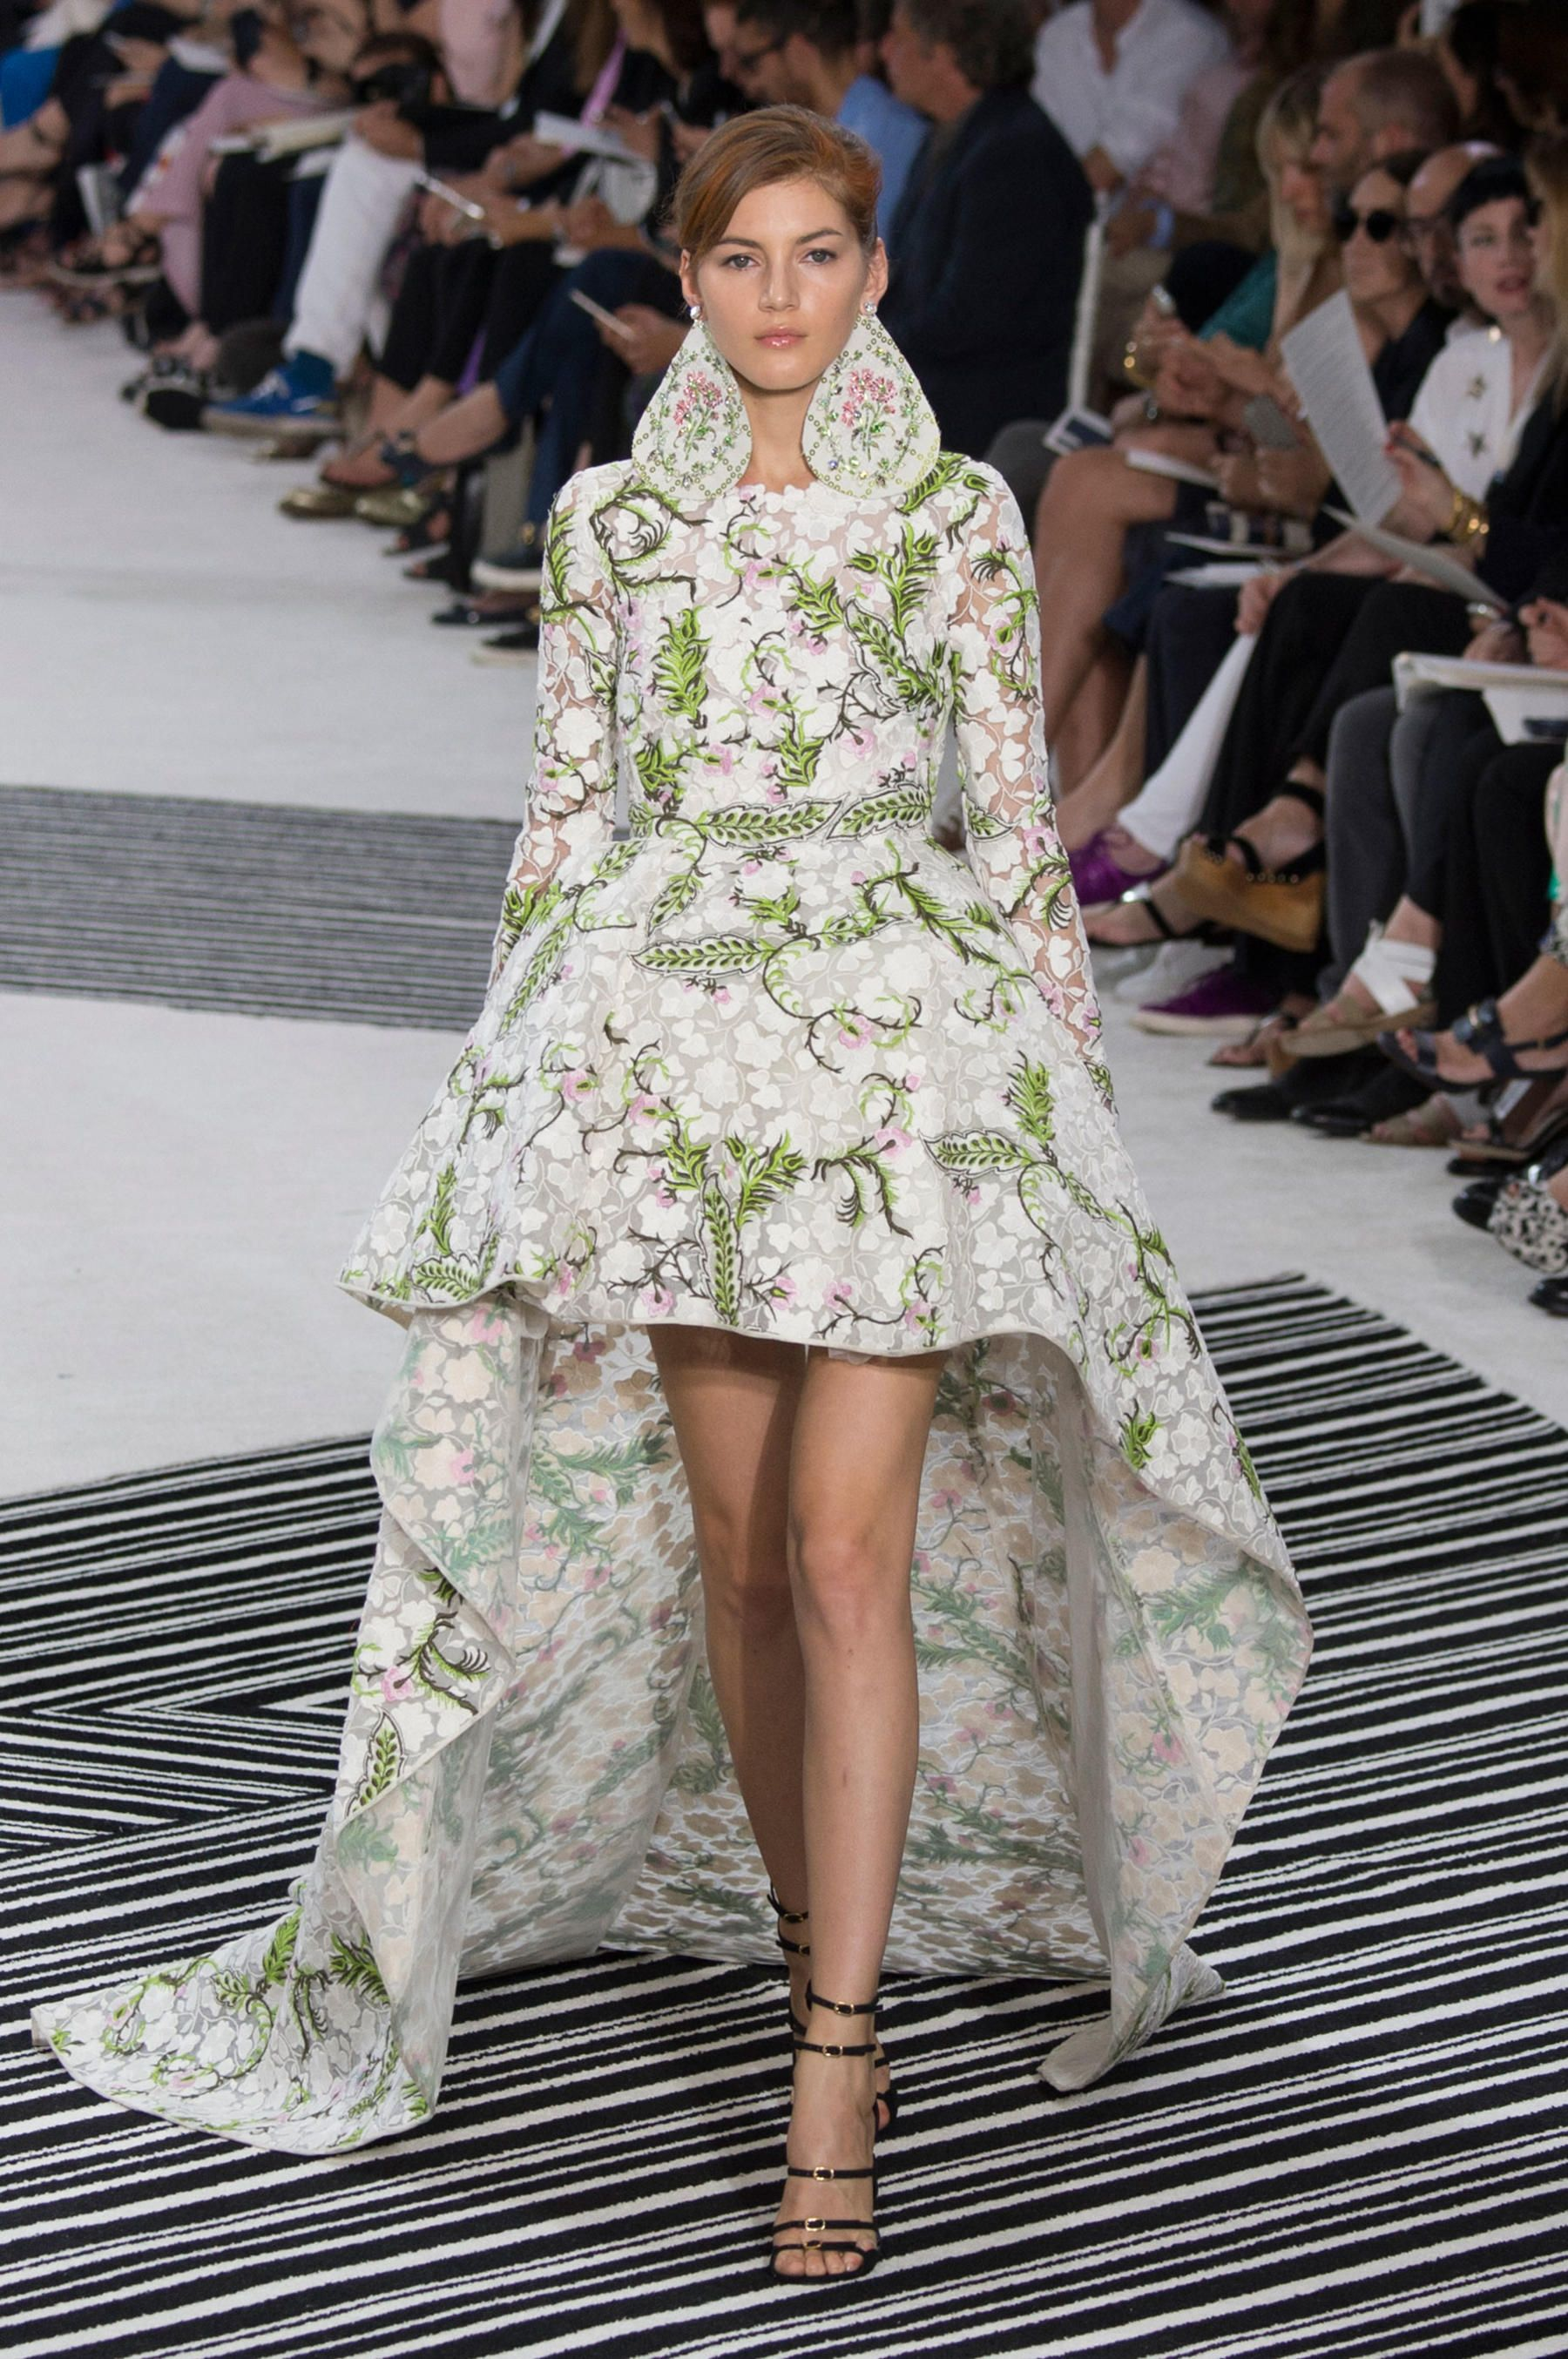 7134bee91b A look from the Giambattista Valli fall 2015 couture collection. Photo   Imaxtree.